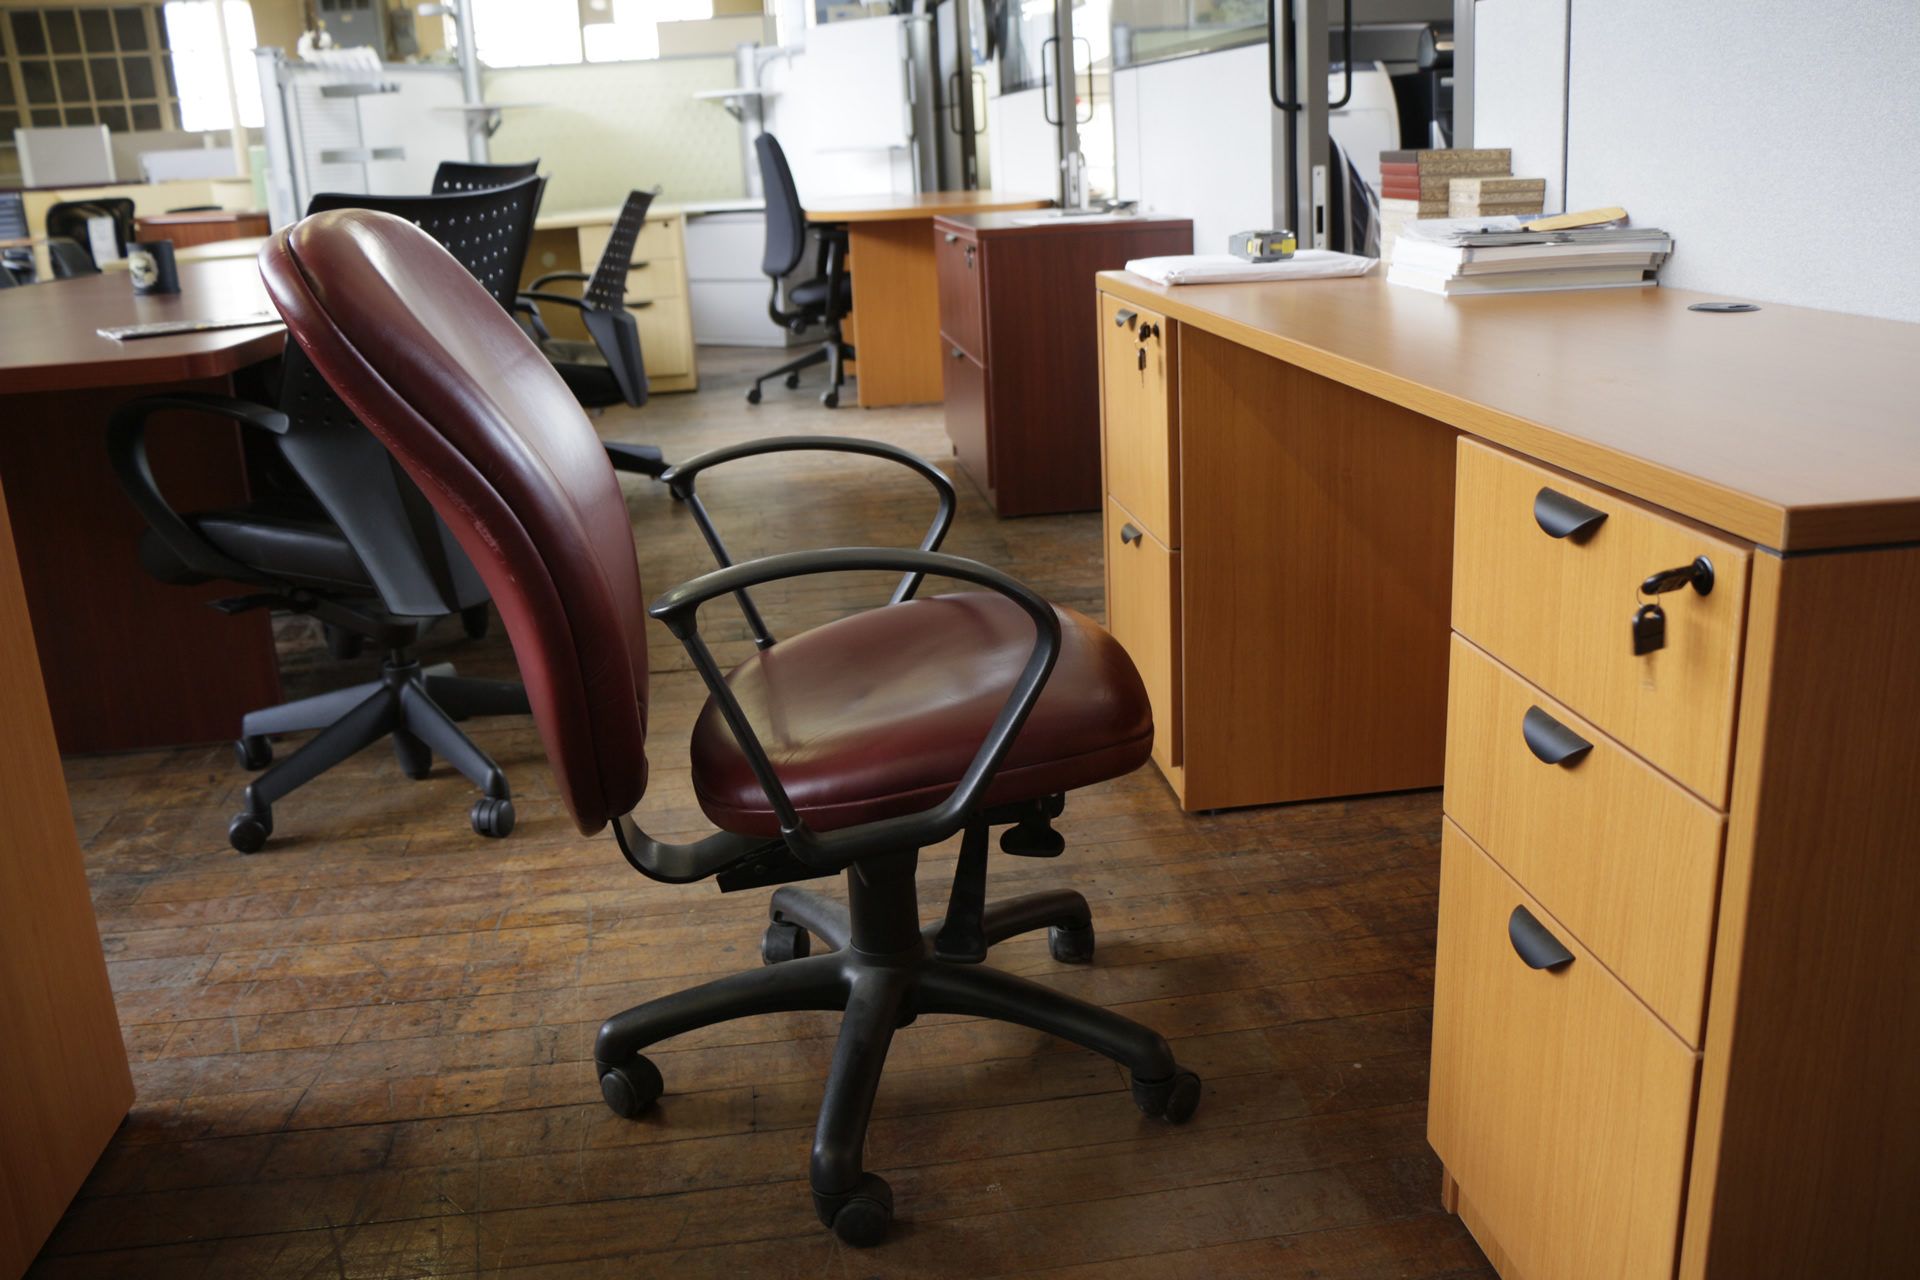 peartreeofficefurniture_peartreeofficefurniture_mg_3287.jpg